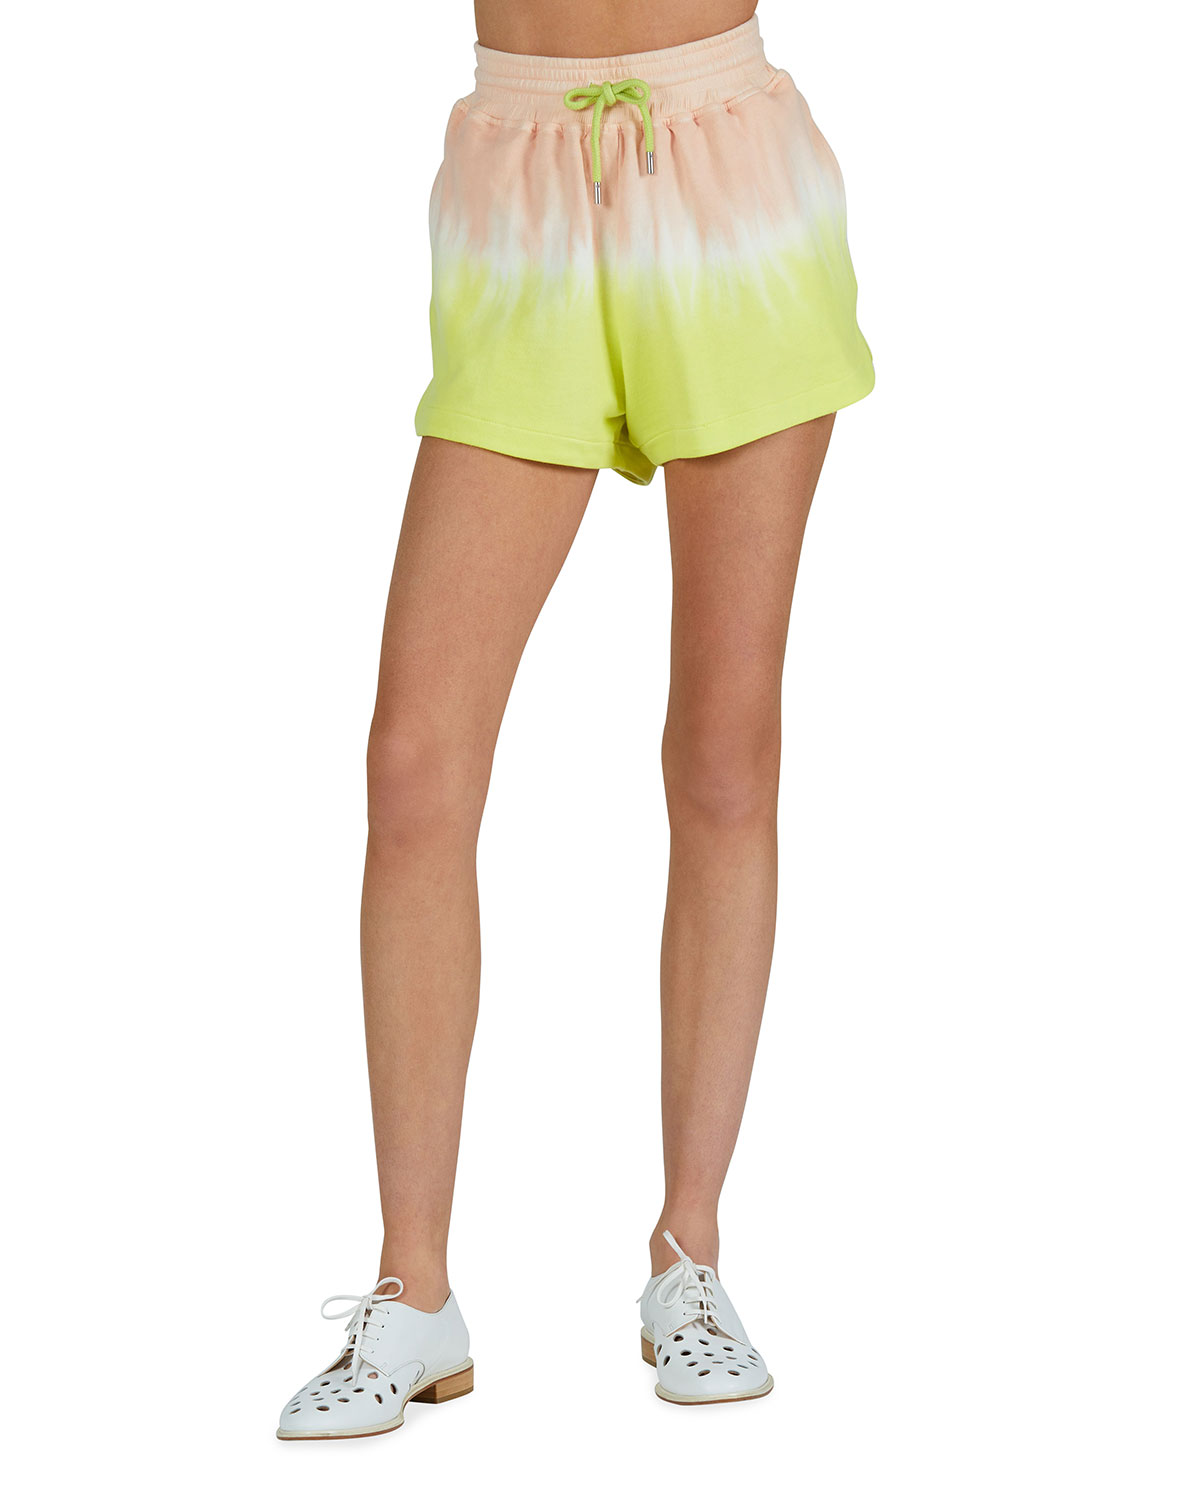 French Terry Tie-Dye Pull-On Shorts